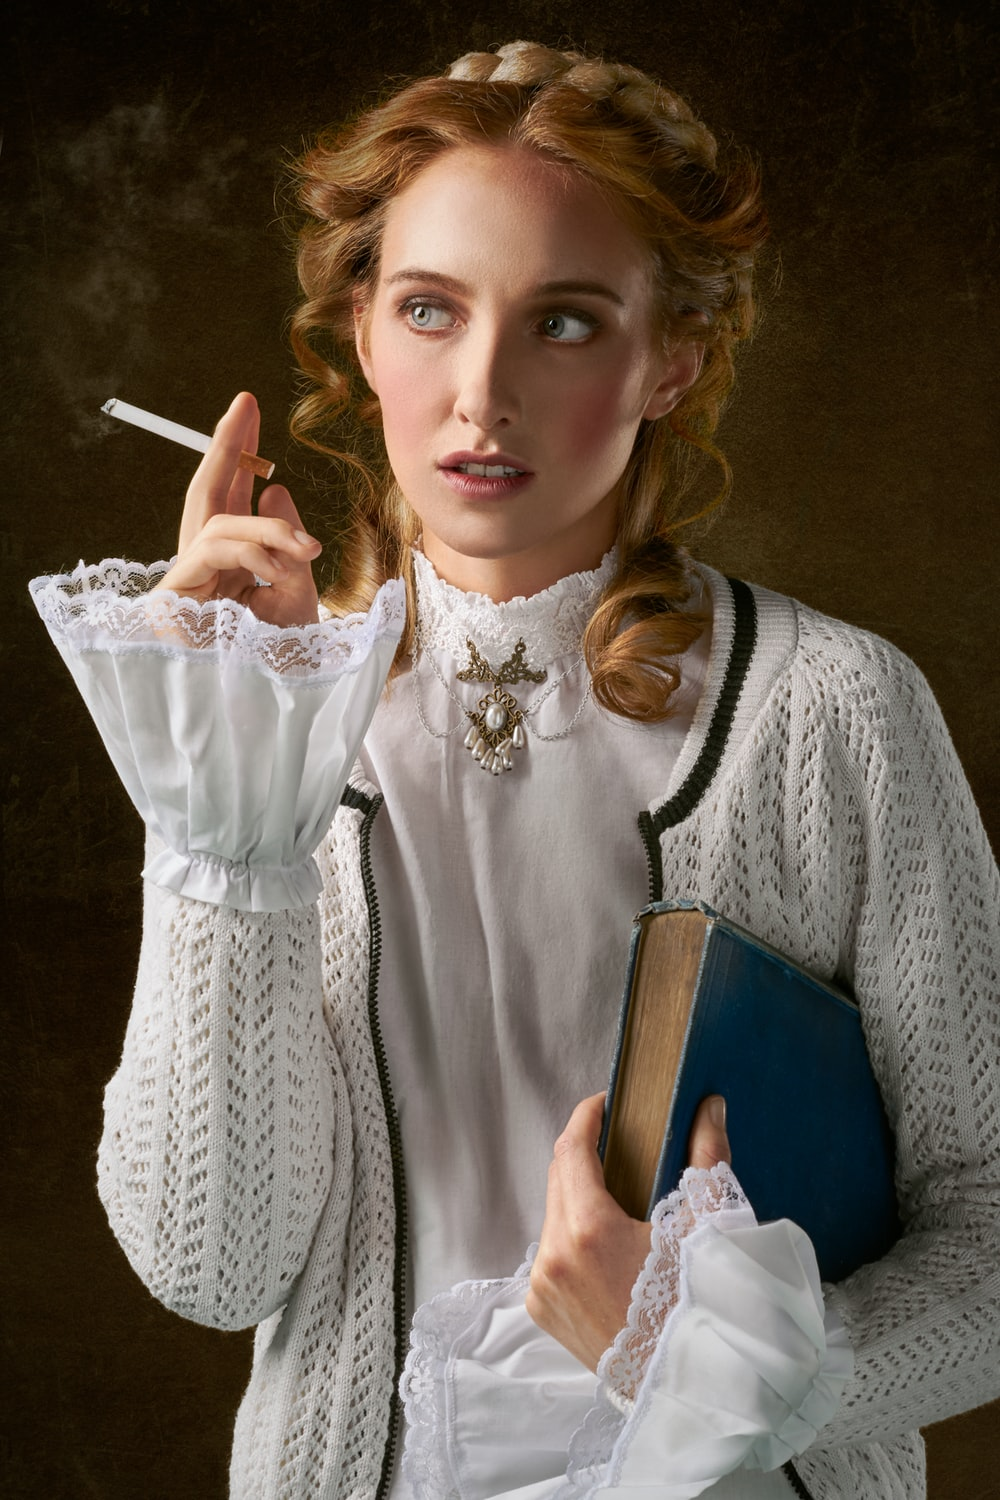 woman with cigarette holding book photo